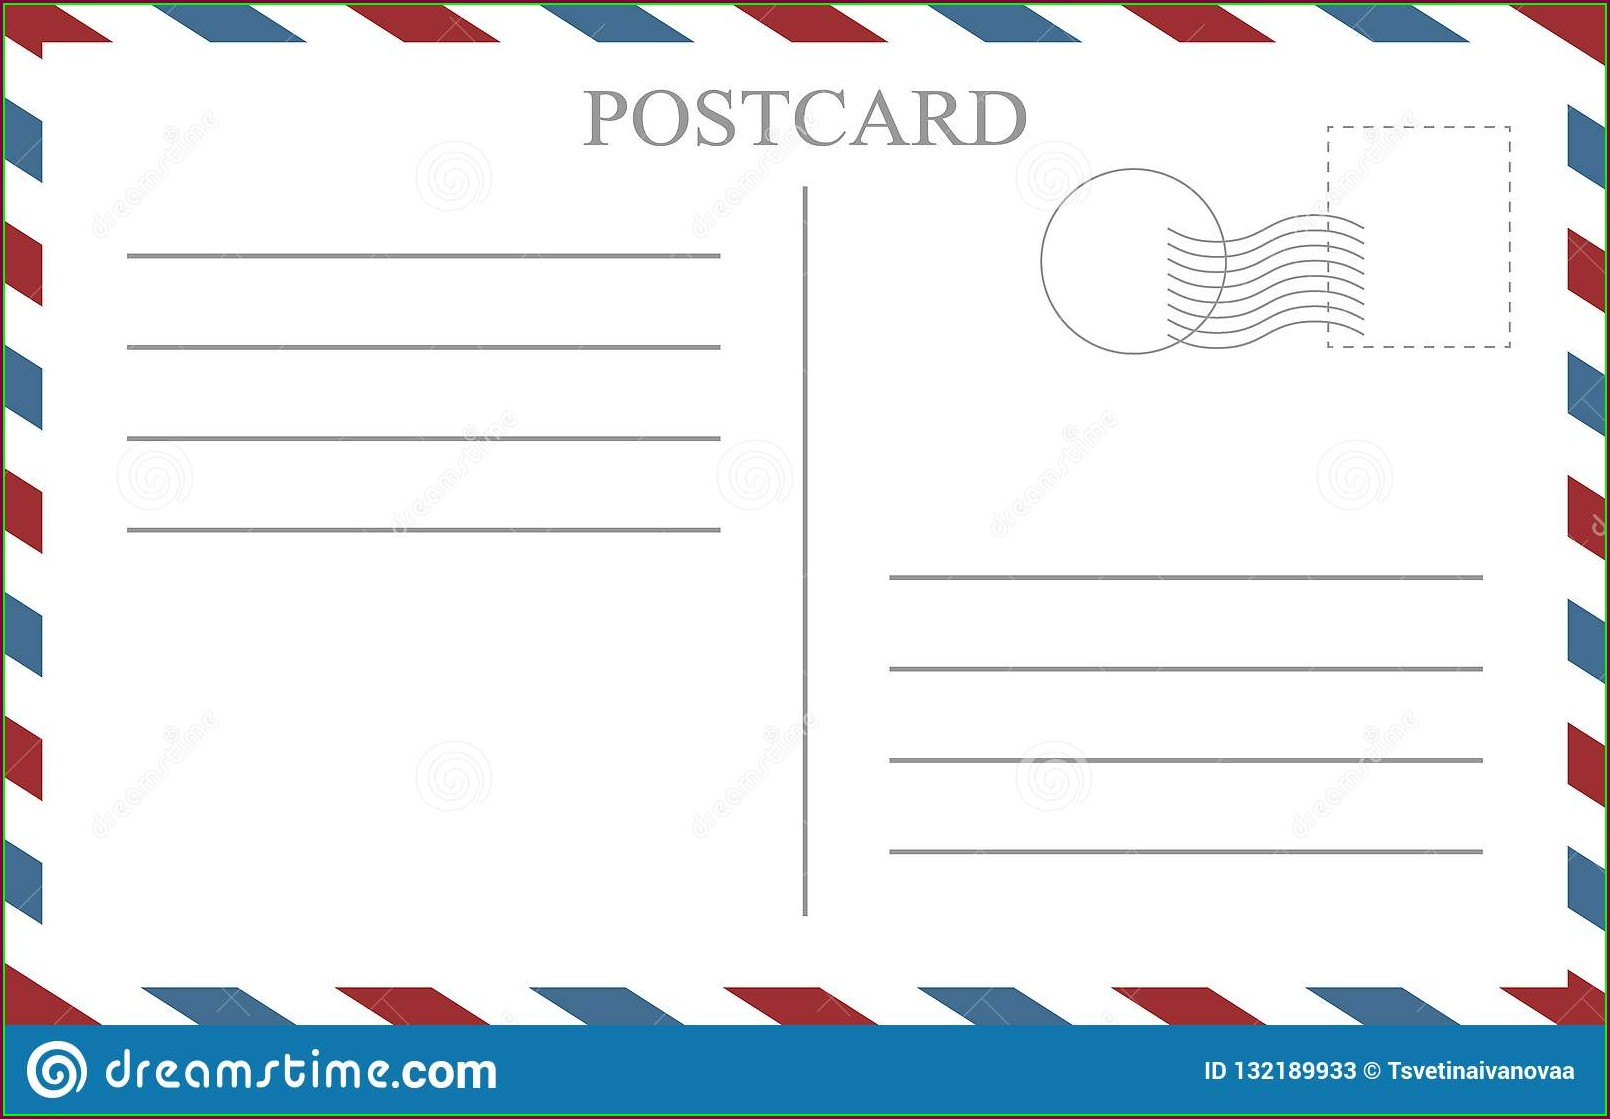 Vintage Postcard Back Template